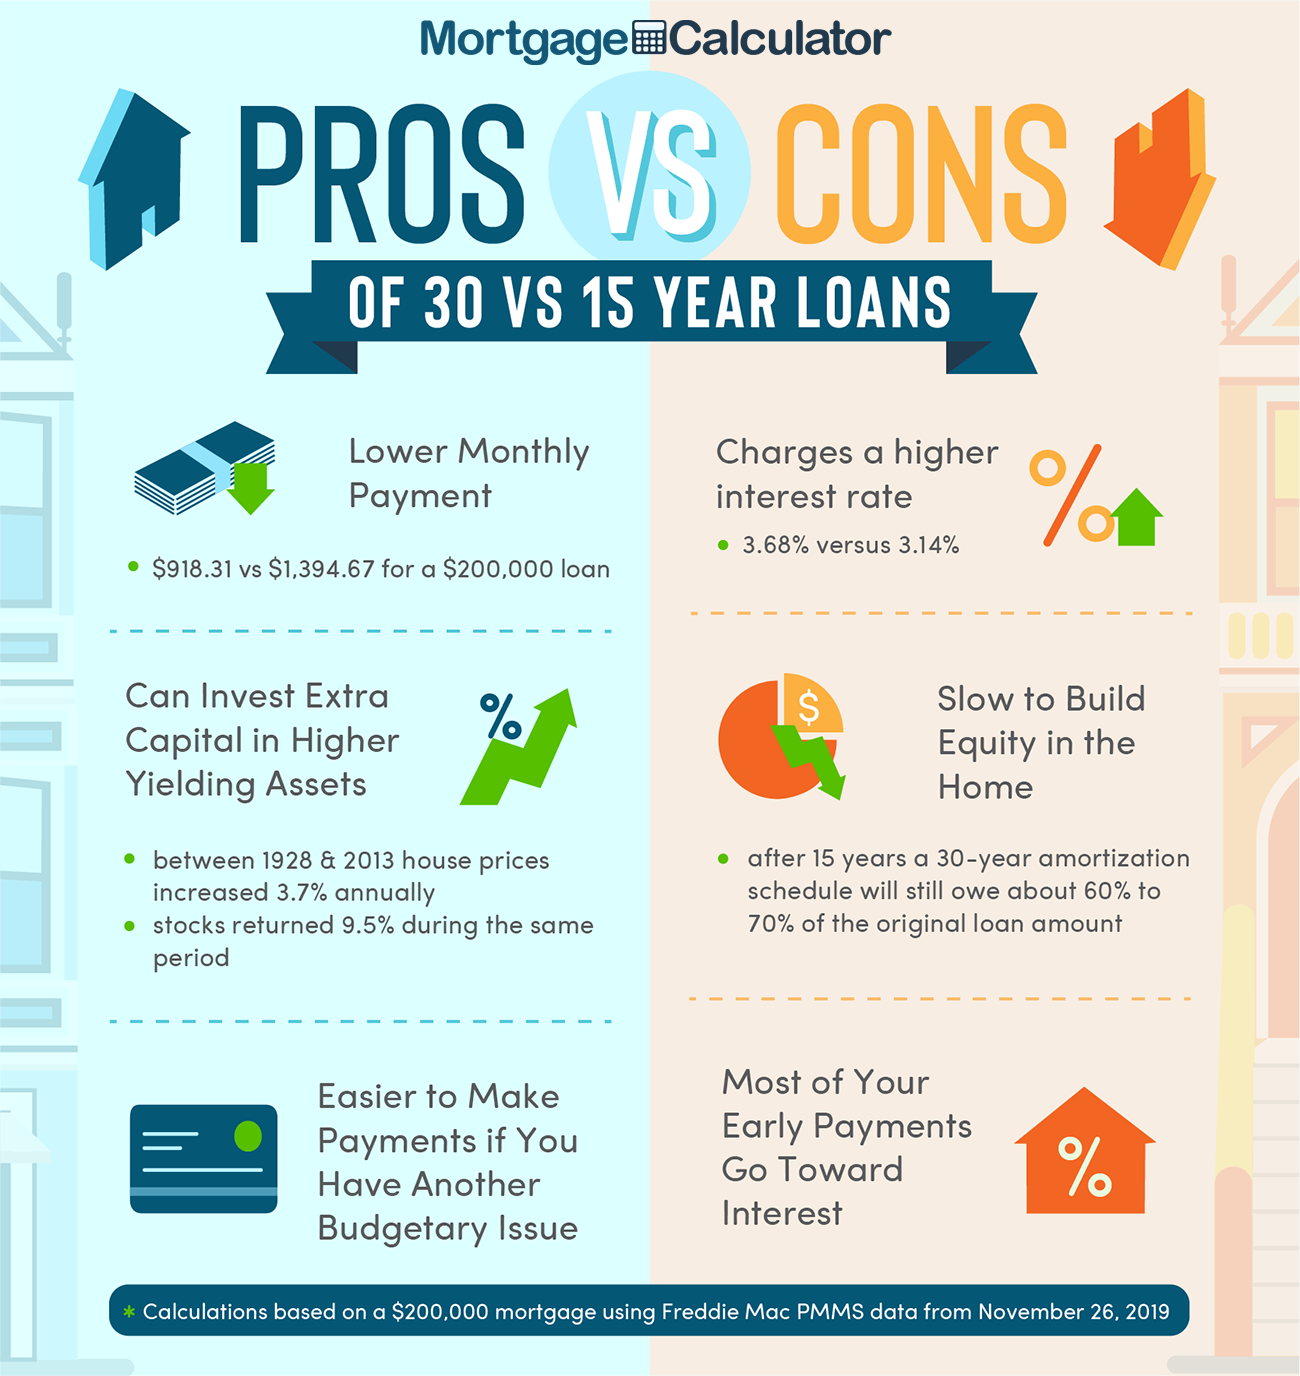 30 Year Mortgage Pros and Cons.